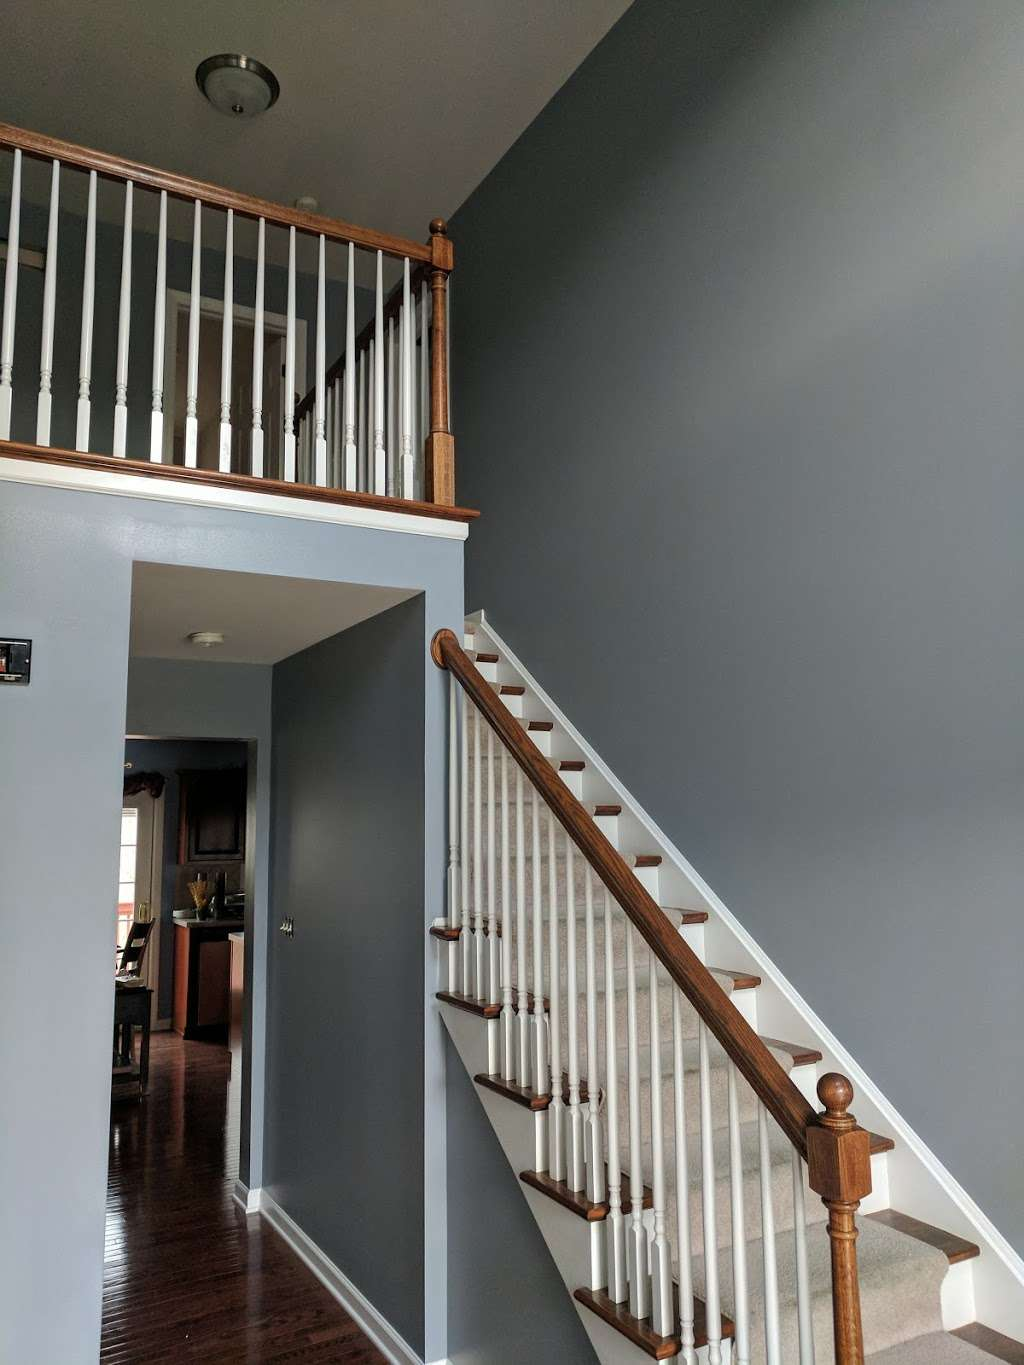 Himes Painting Plus - painter  | Photo 5 of 10 | Address: 1677 Grantley Rd, York, PA 17403, USA | Phone: (717) 574-9845